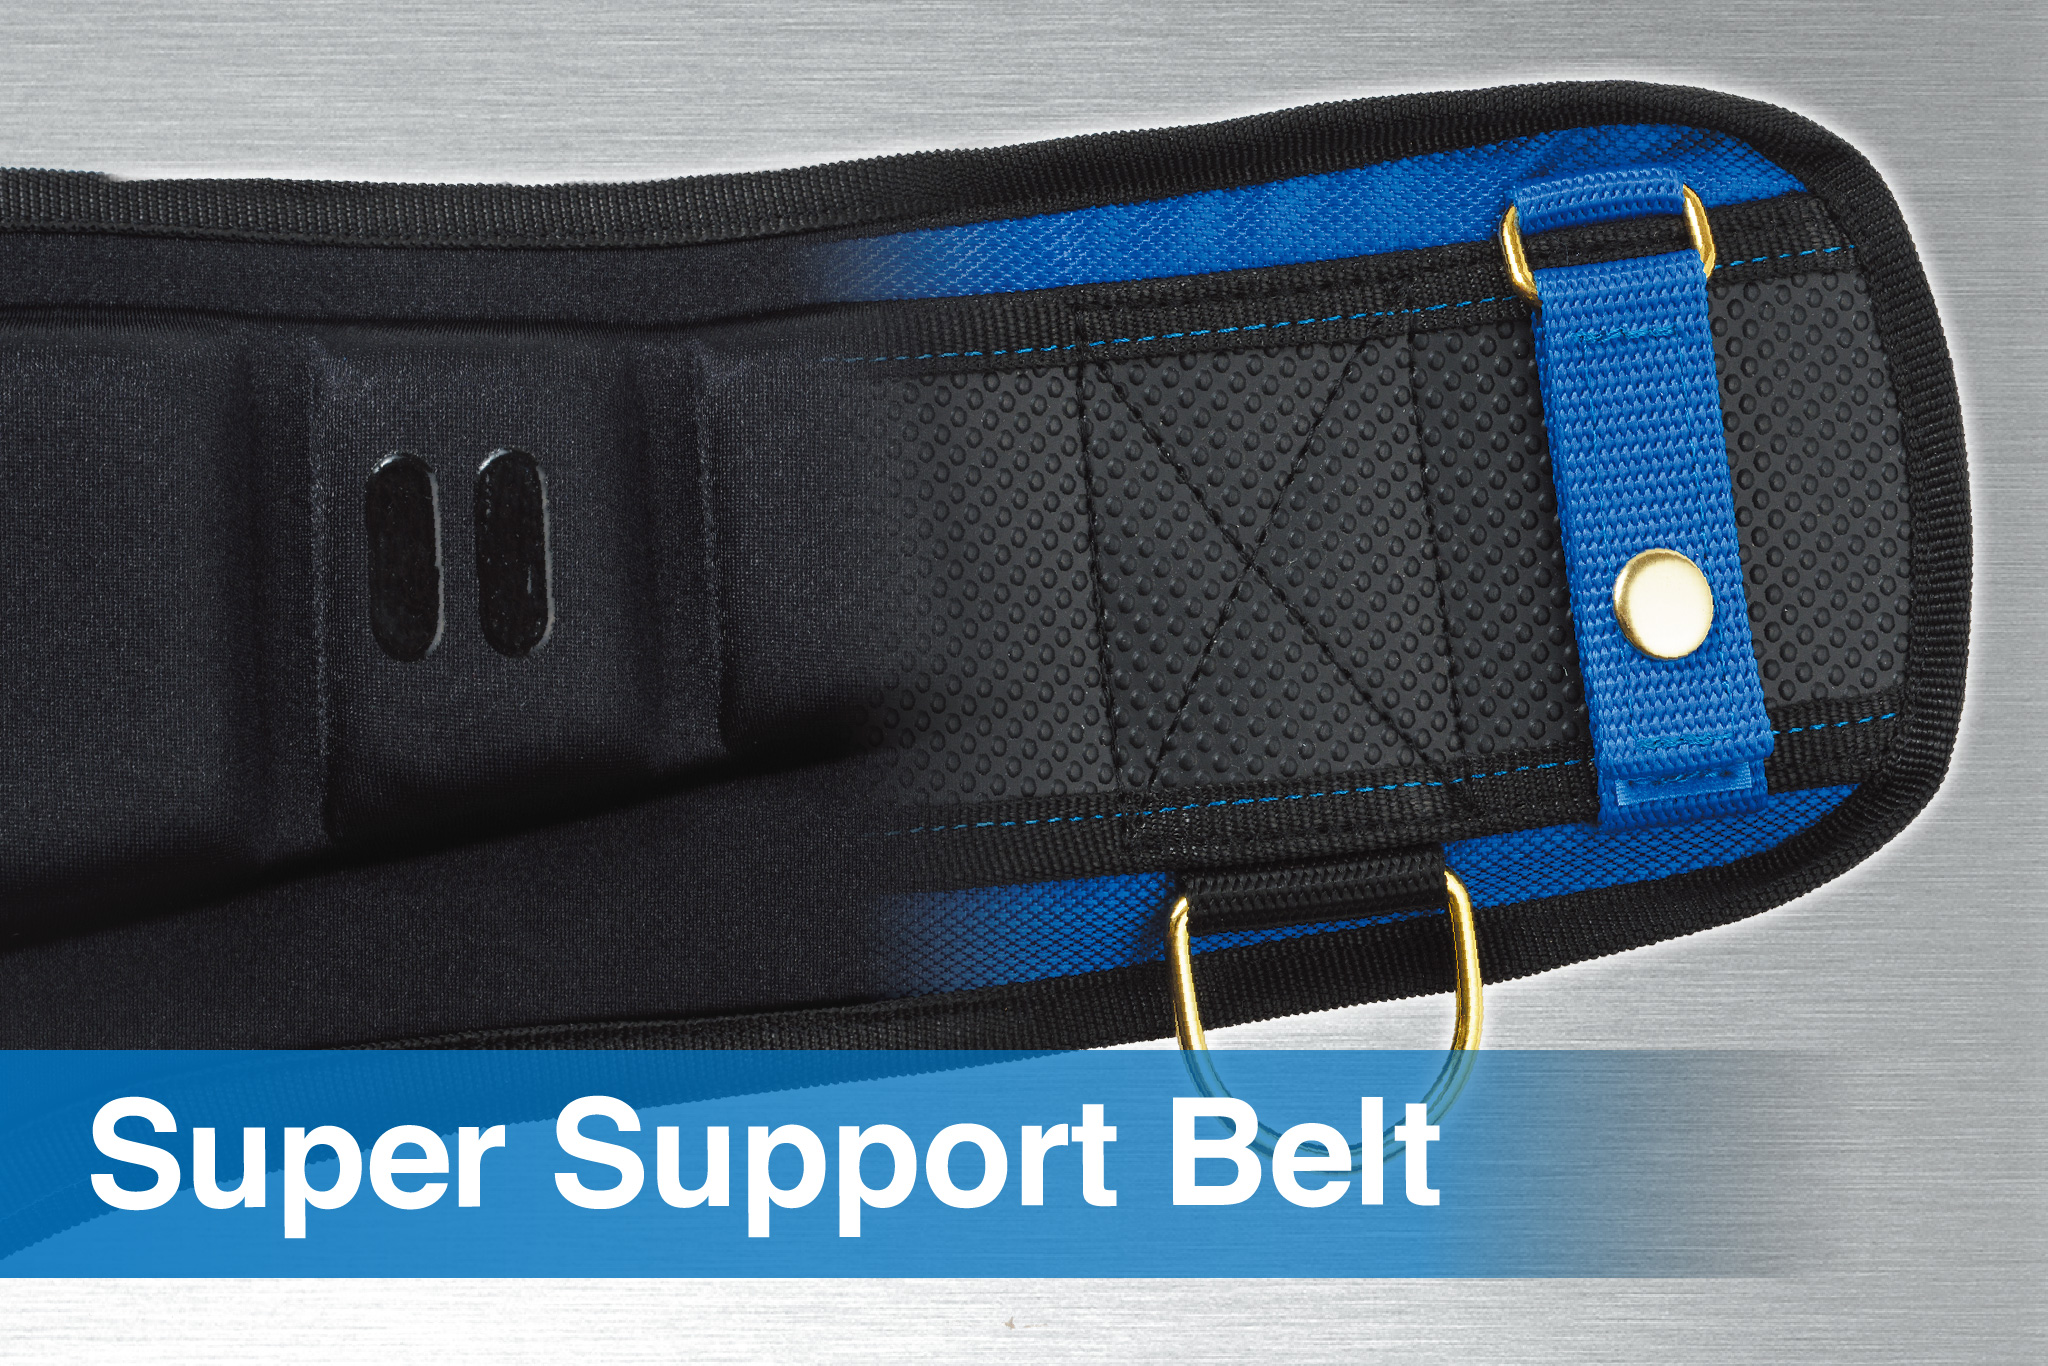 Super Support Belt